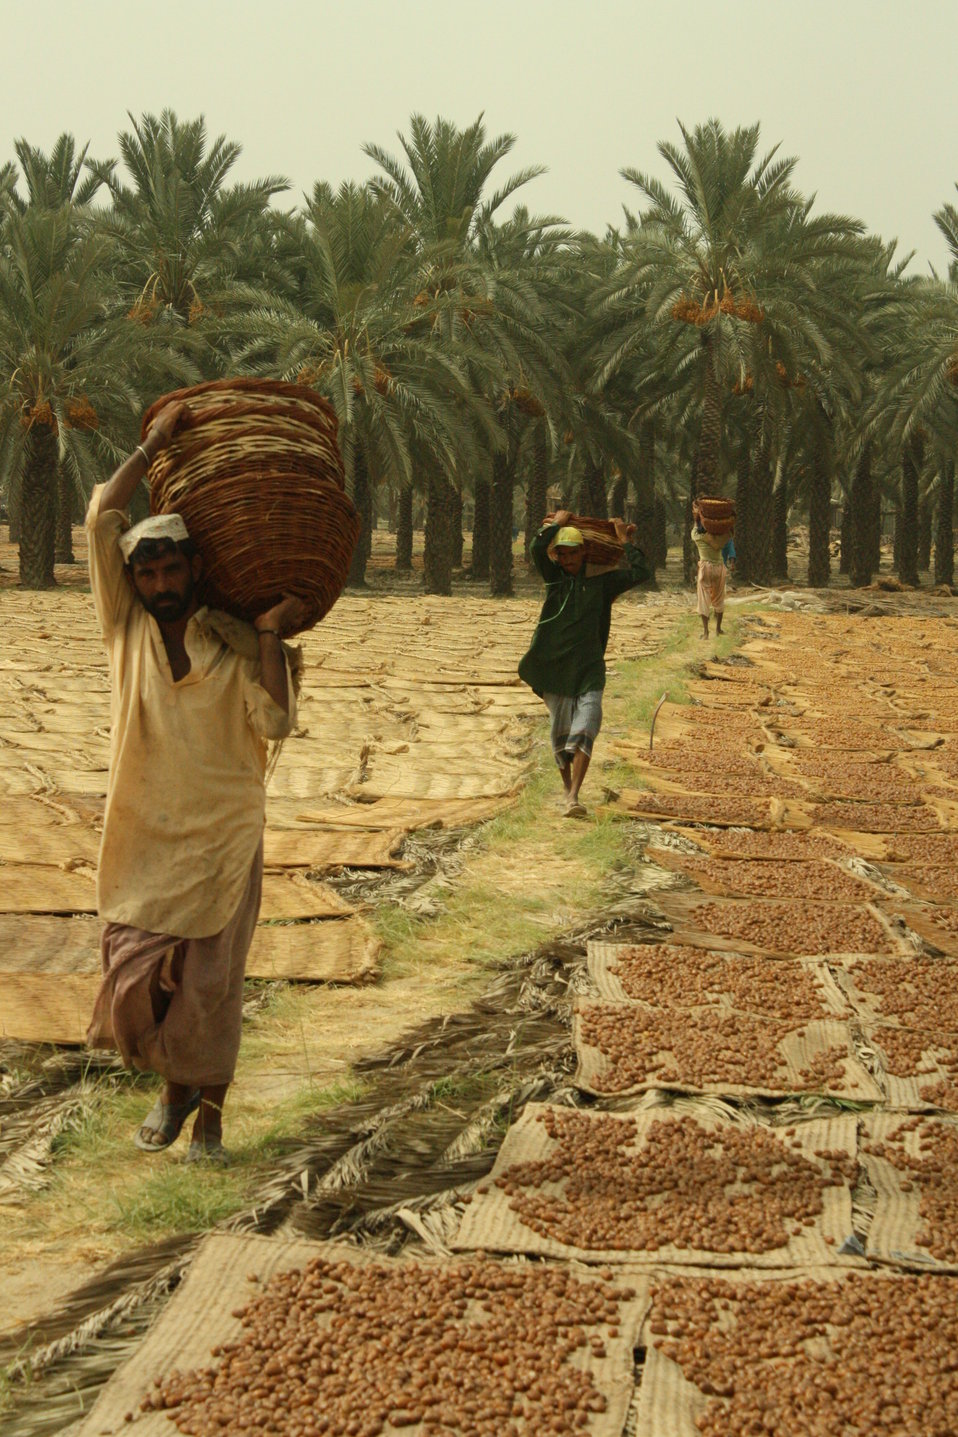 Dates are the third largest horticulture crop grown in Pakistan with an annual production of 550,000 to 650,000 metric tons (MT).